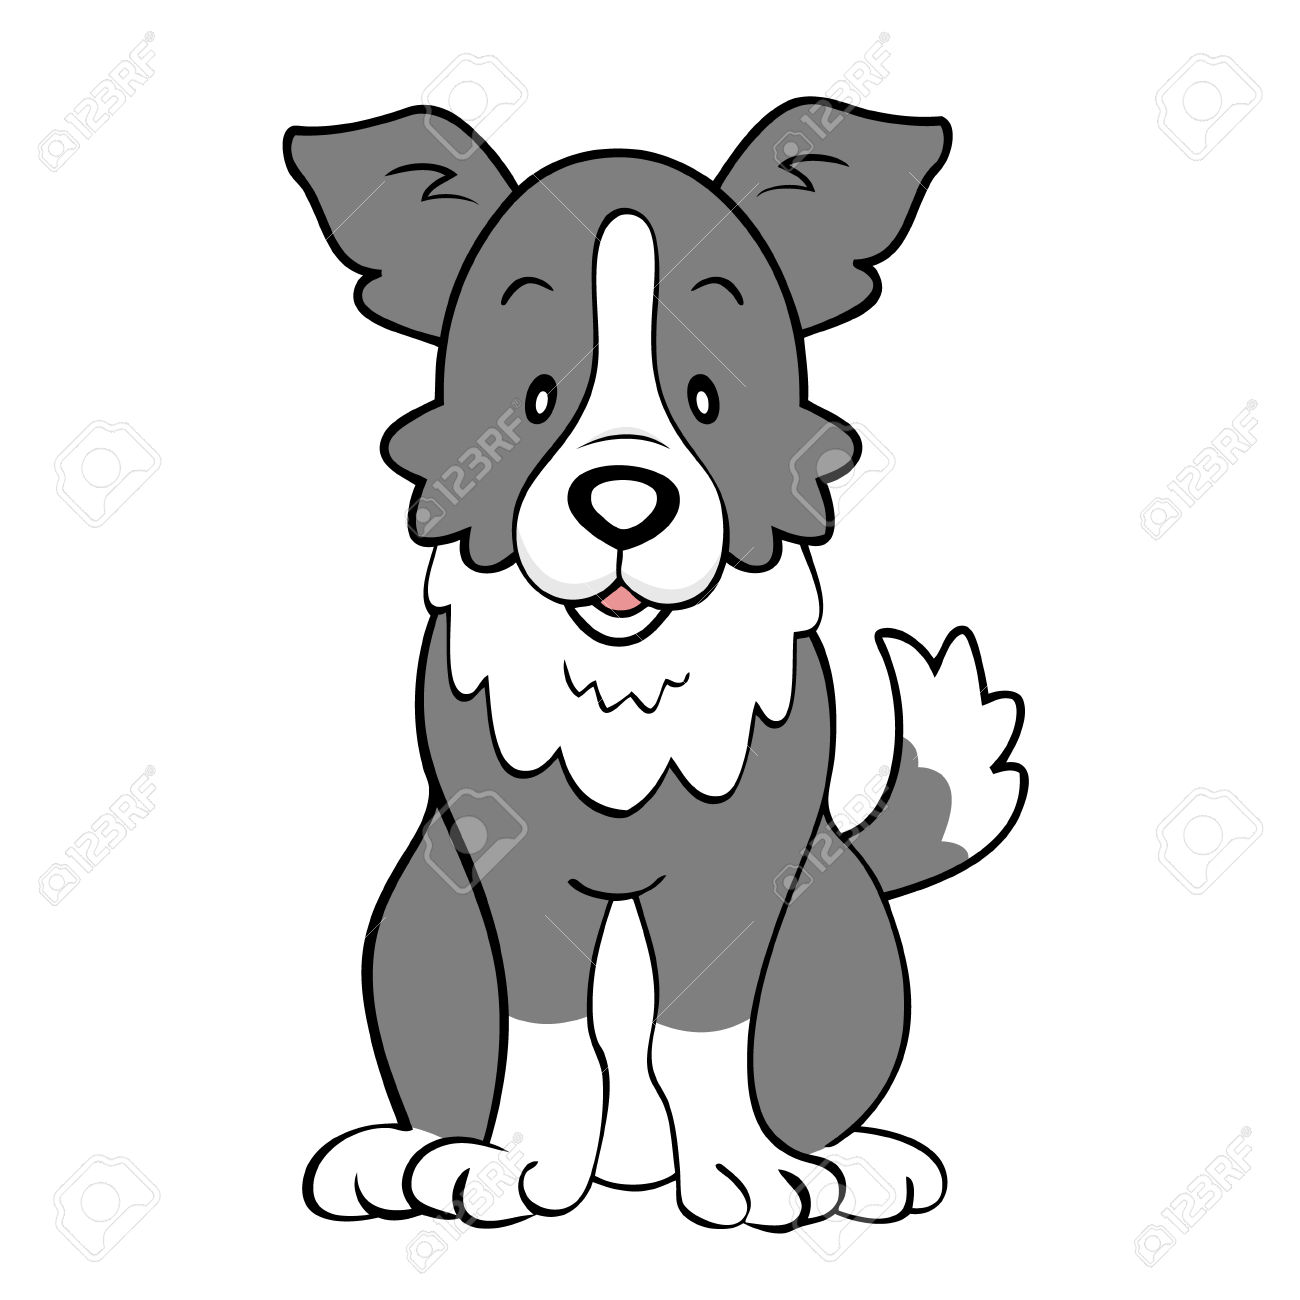 rough collie silhouette at getdrawings com free for personal use rh getdrawings com cartoon border collie clipart cartoon border collie clipart